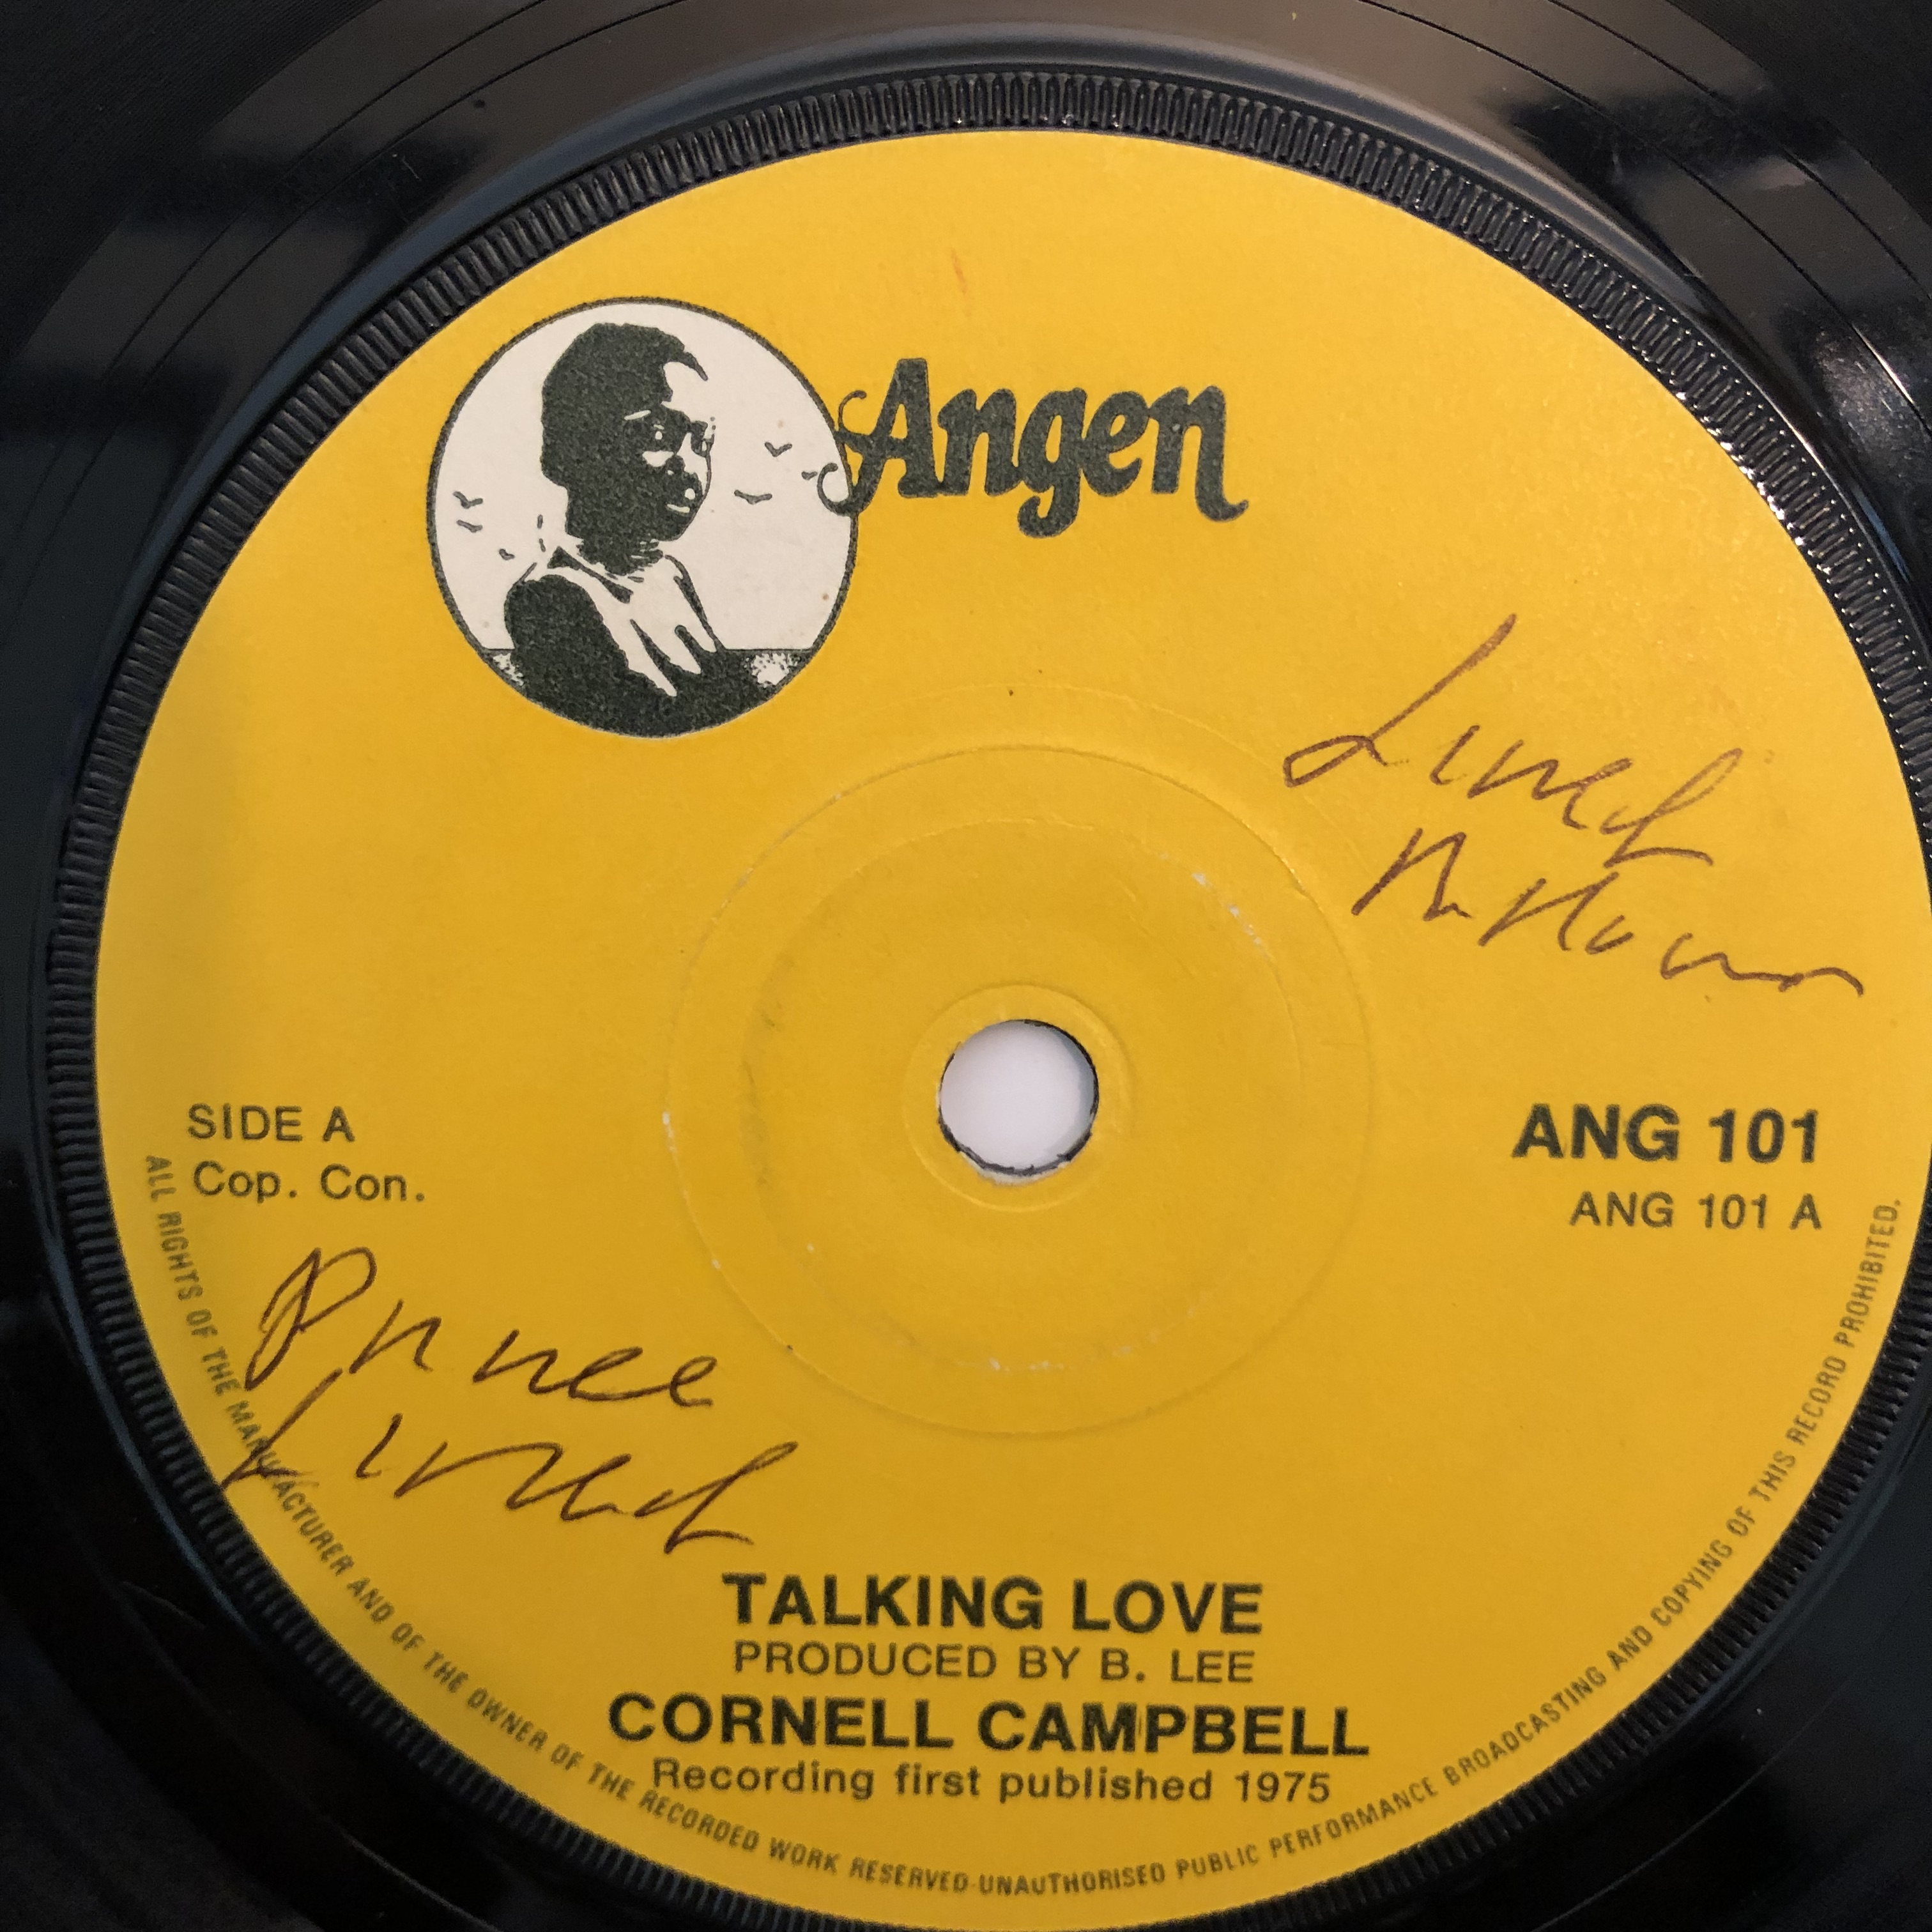 Cornell Campbell - Talking Love【7-20308】